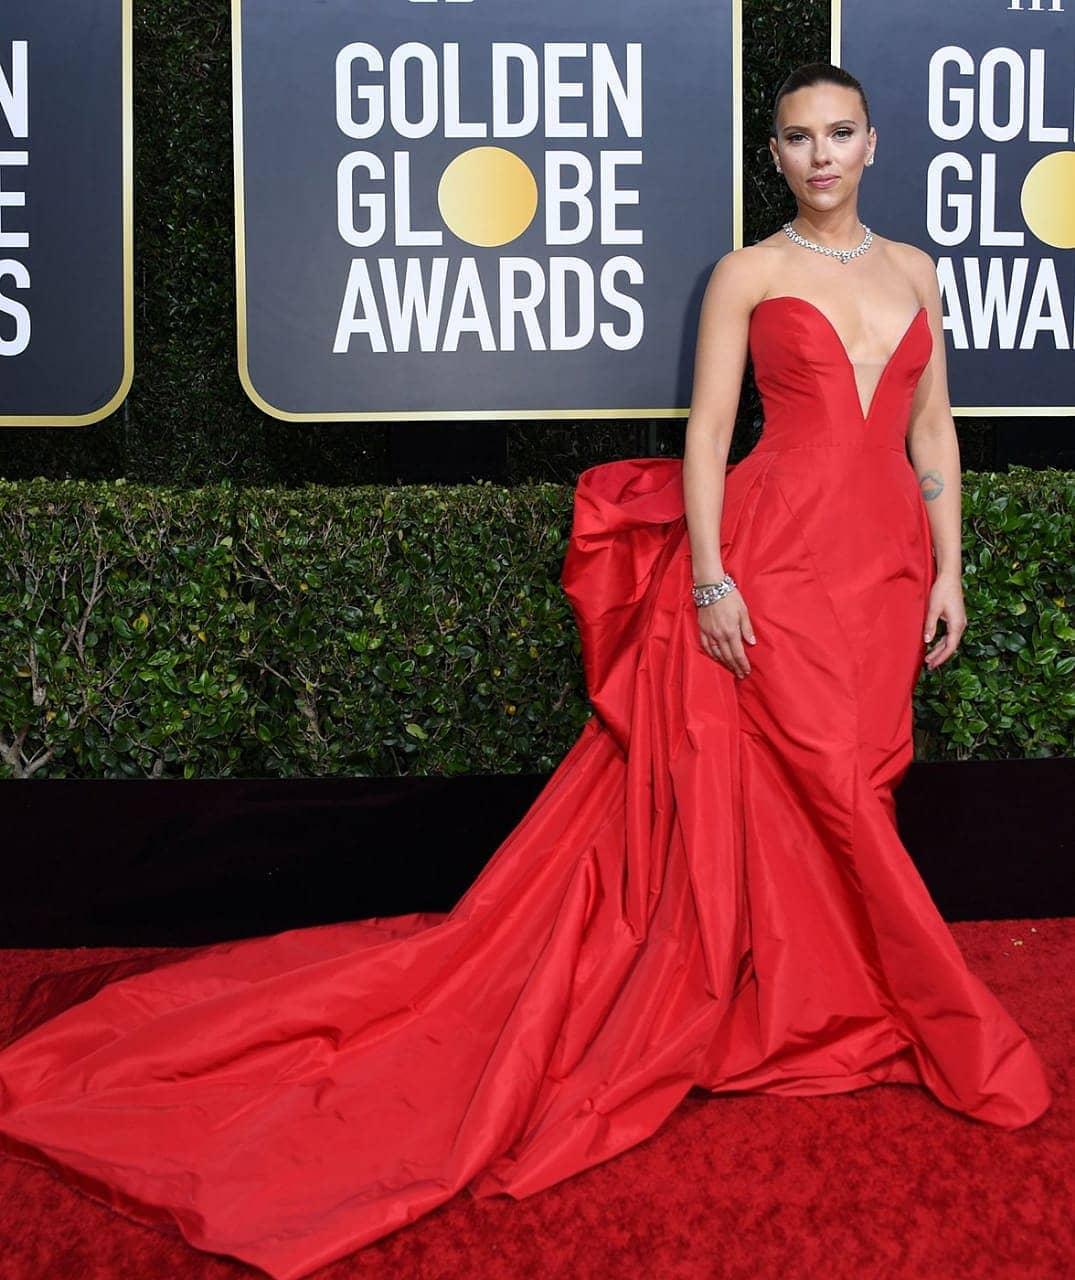 Golden Globes 2020 The Stars Who Stood Out With Their Bold